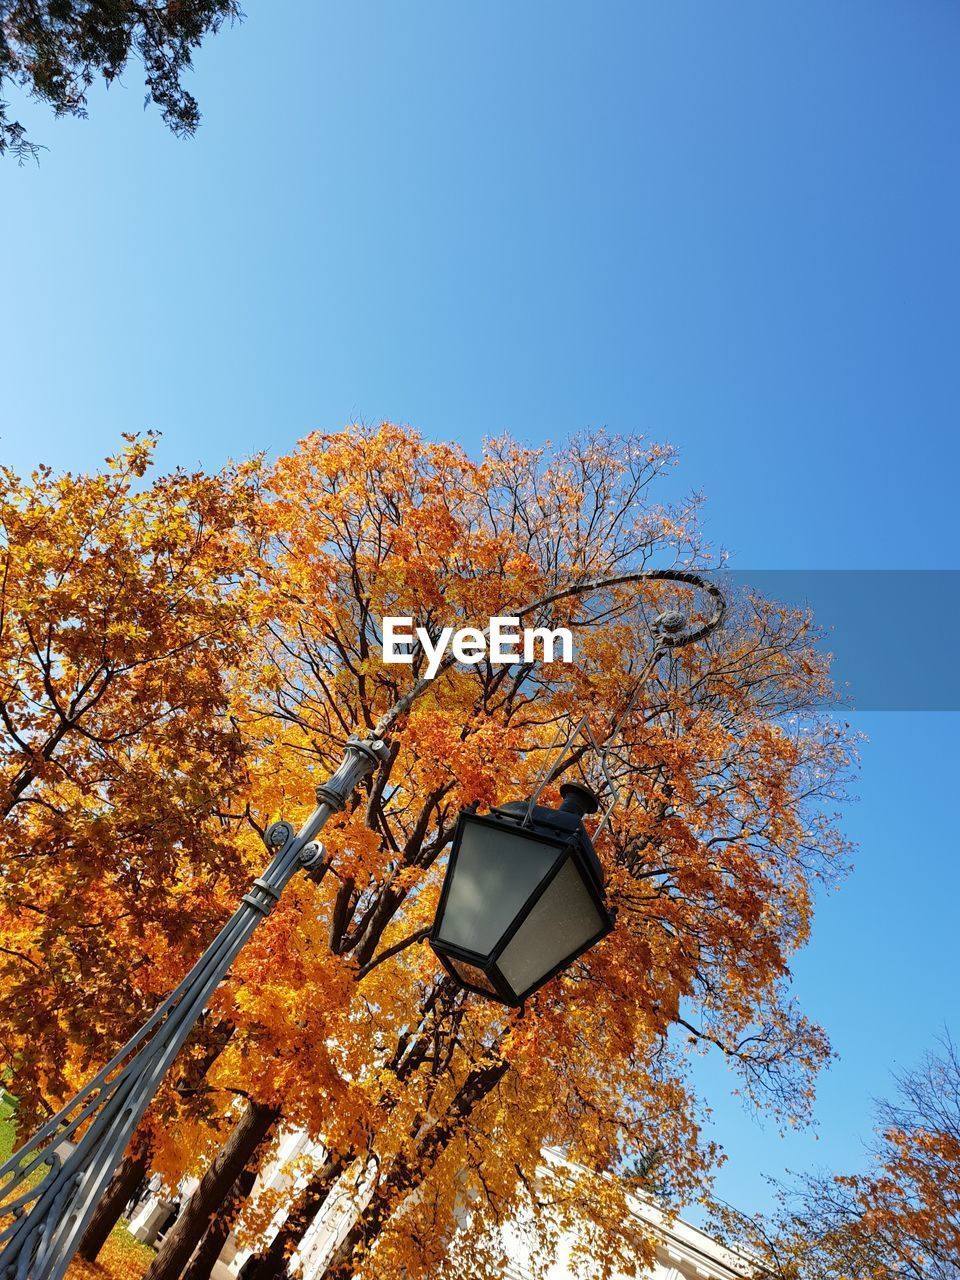 tree, sky, low angle view, plant, nature, clear sky, blue, no people, autumn, change, day, lighting equipment, branch, outdoors, street light, copy space, sunlight, orange color, growth, sign